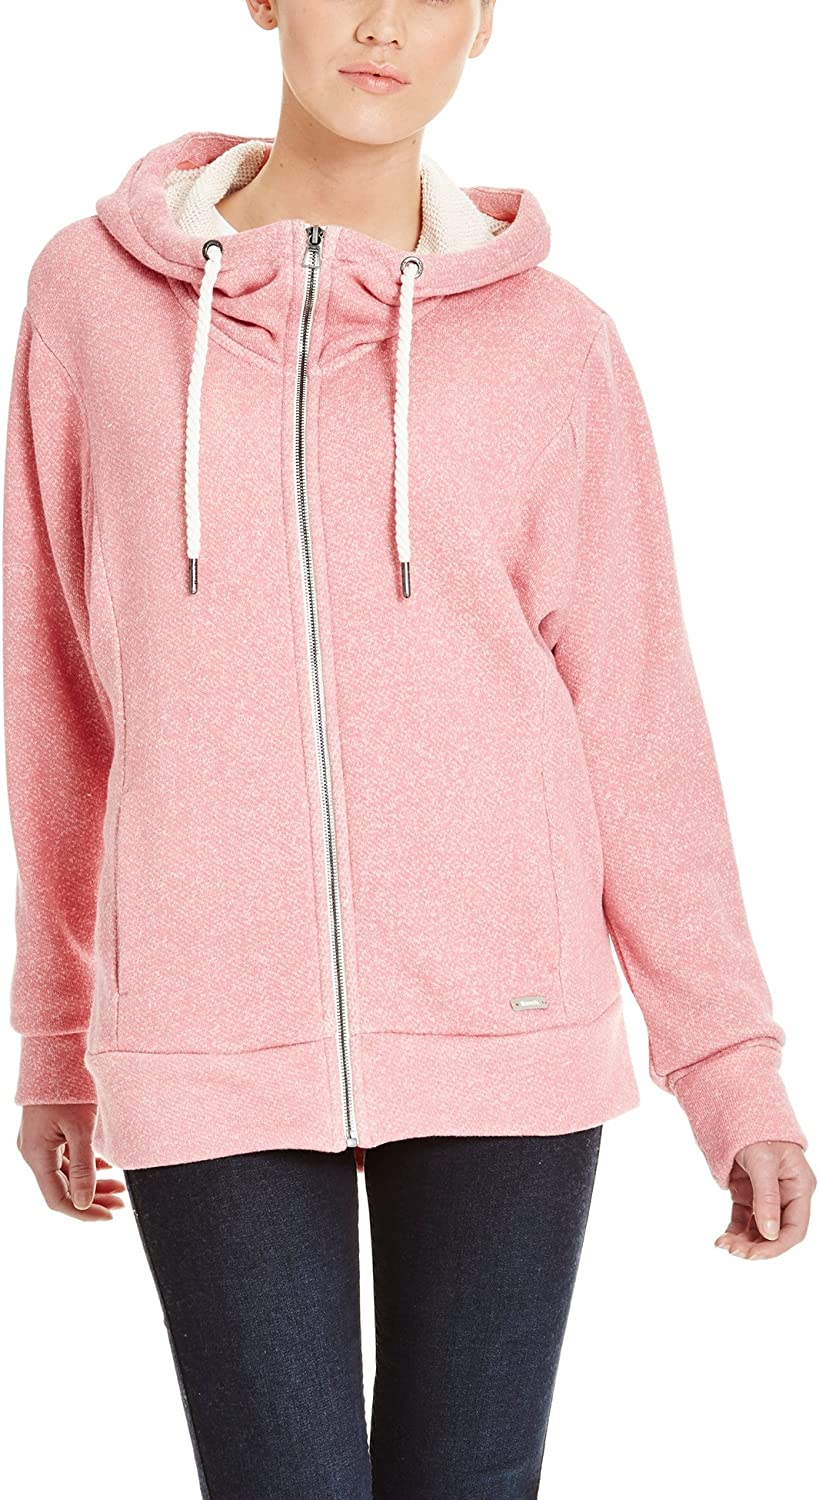 Bench Sporty Sweatshirt in Pink